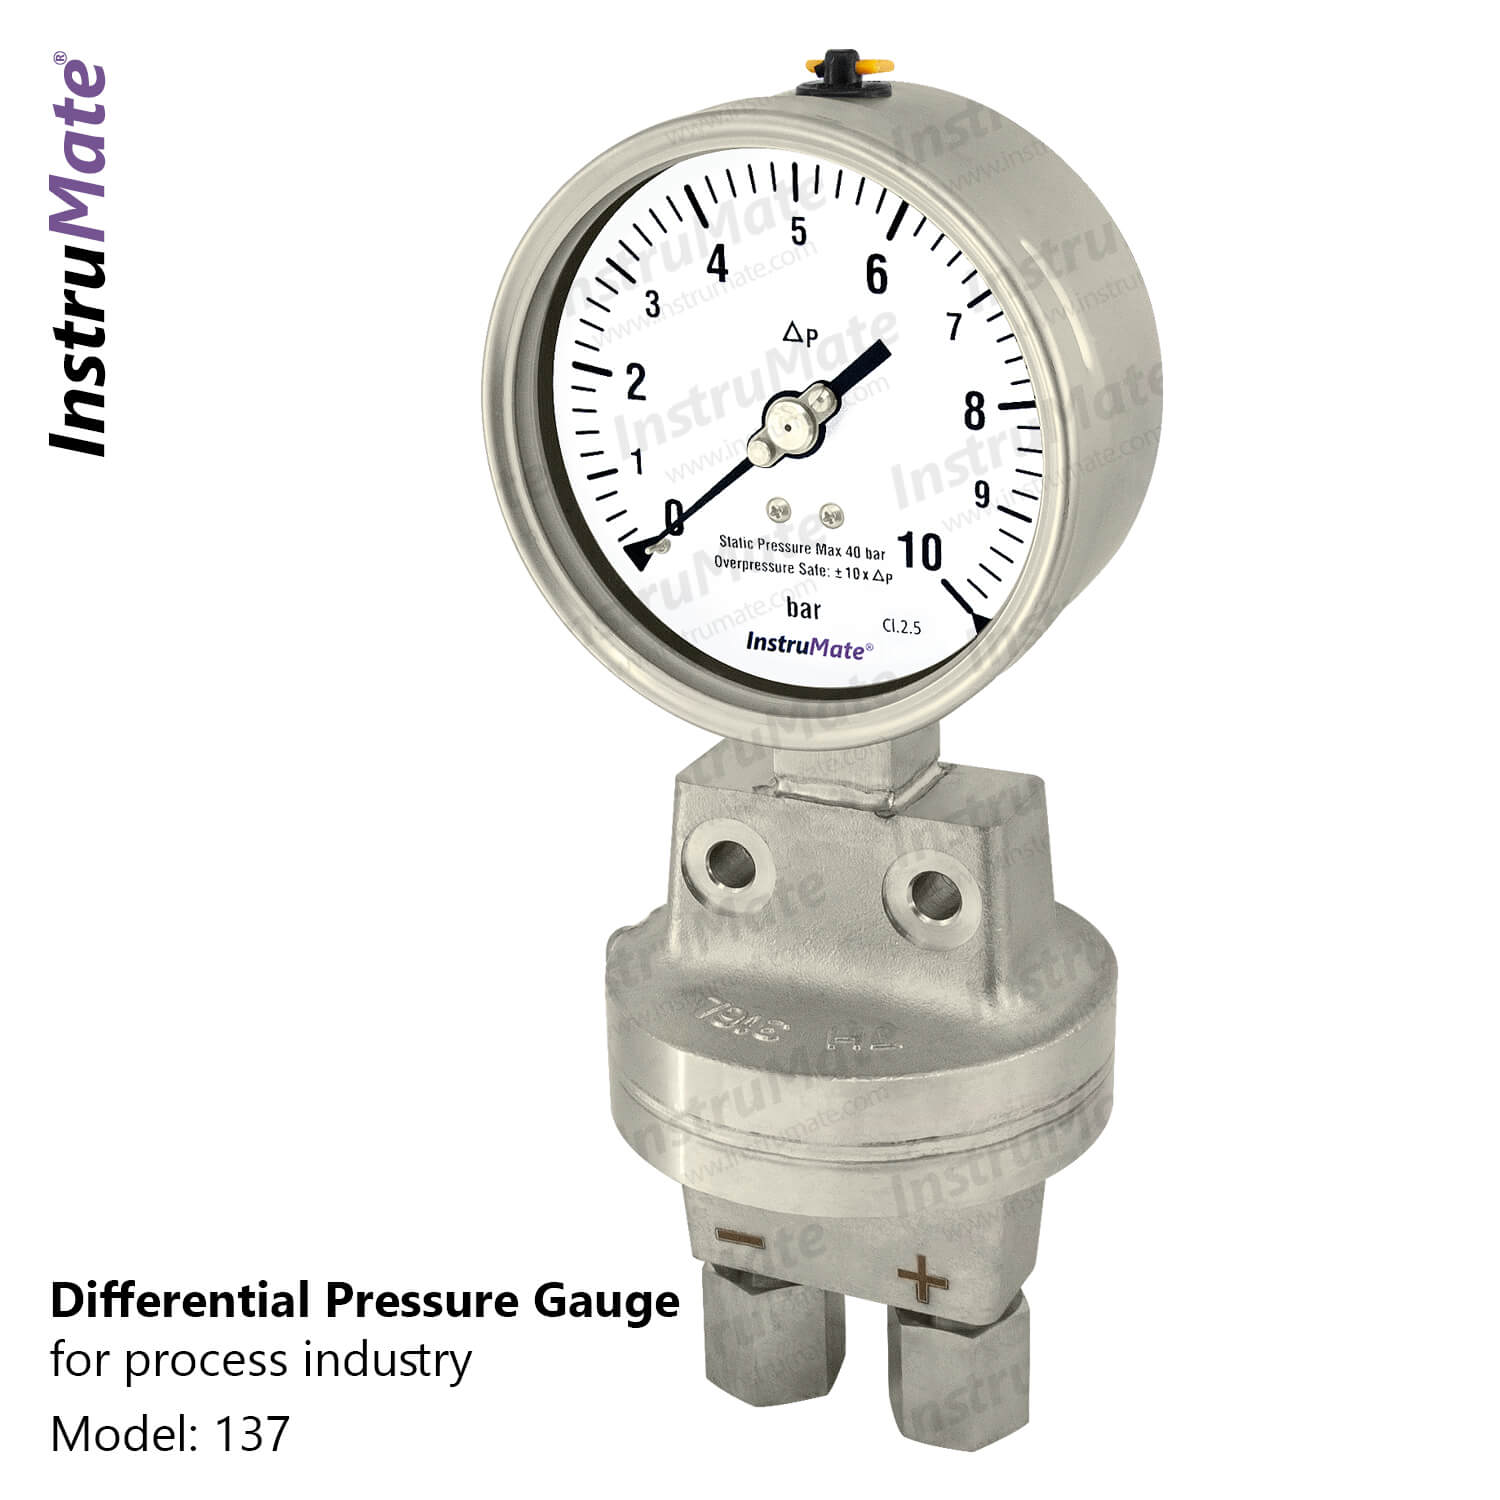 Differential pressure gauge - 132 - instrumate